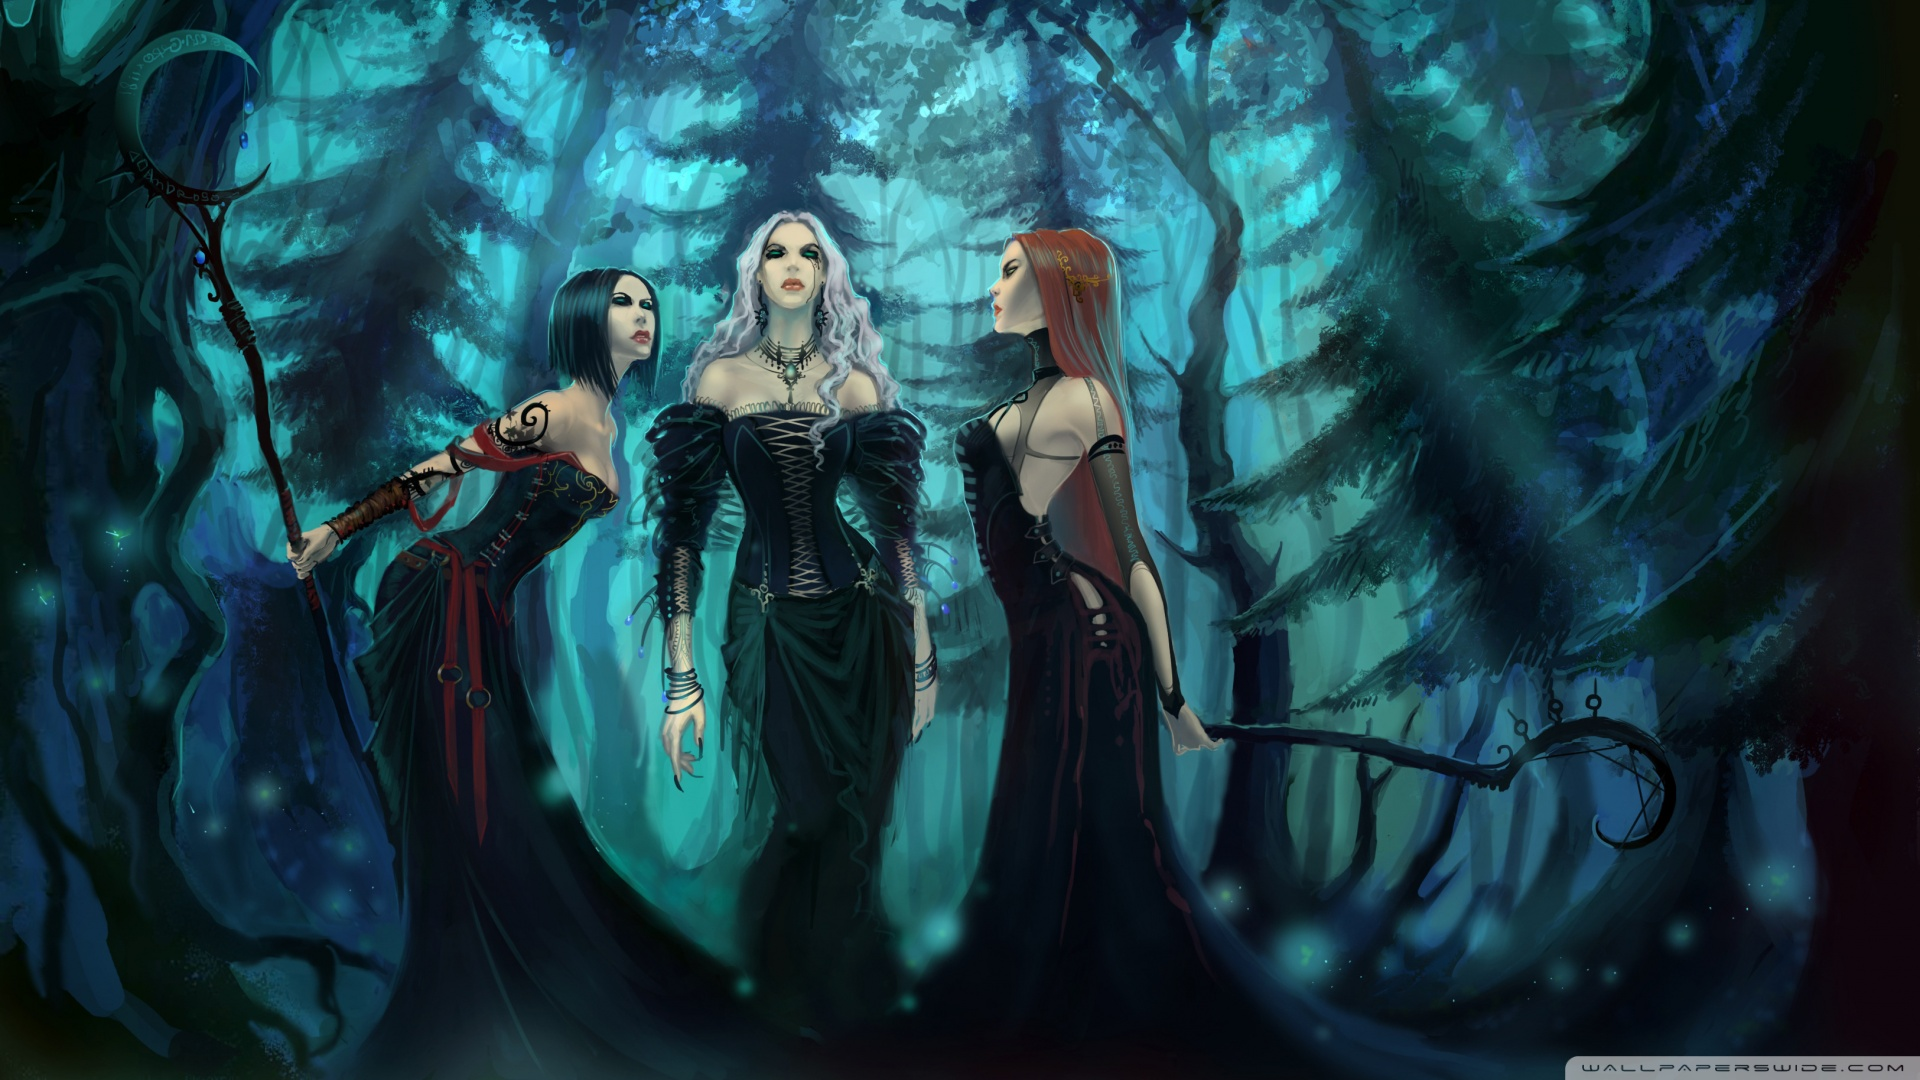 Witch Aesthetic Desktop Wallpapers - Top Free Witch ...